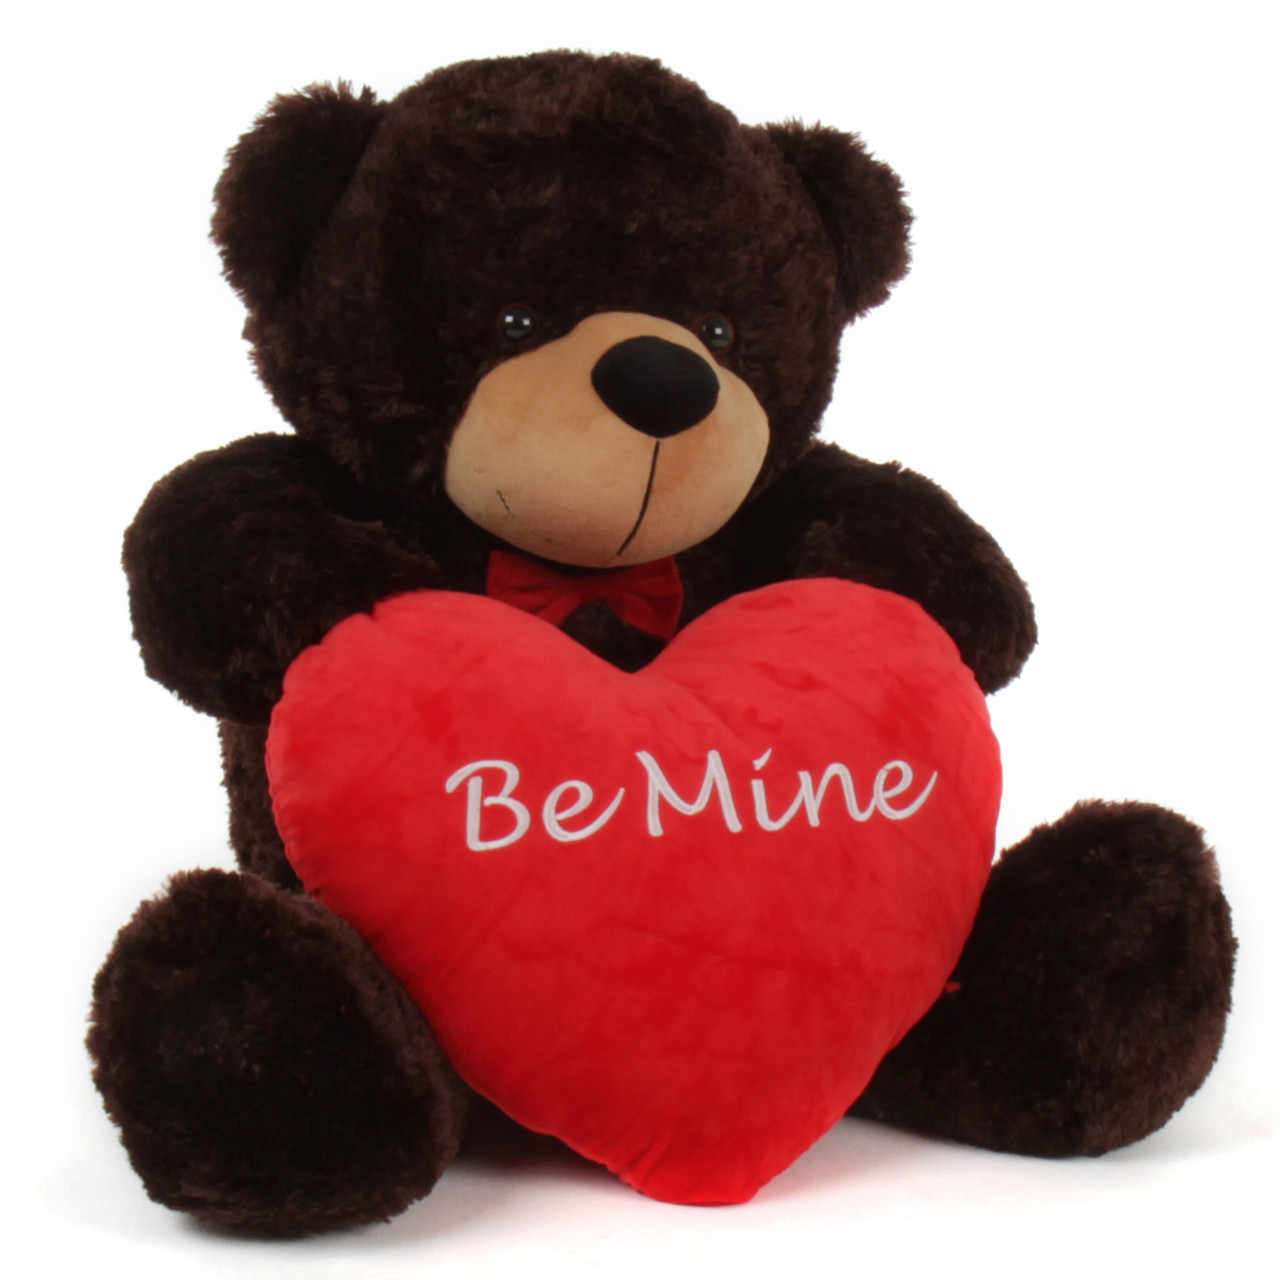 Giant Teddy 38in Brownie Cuddles Valentines Day Bear W/Be